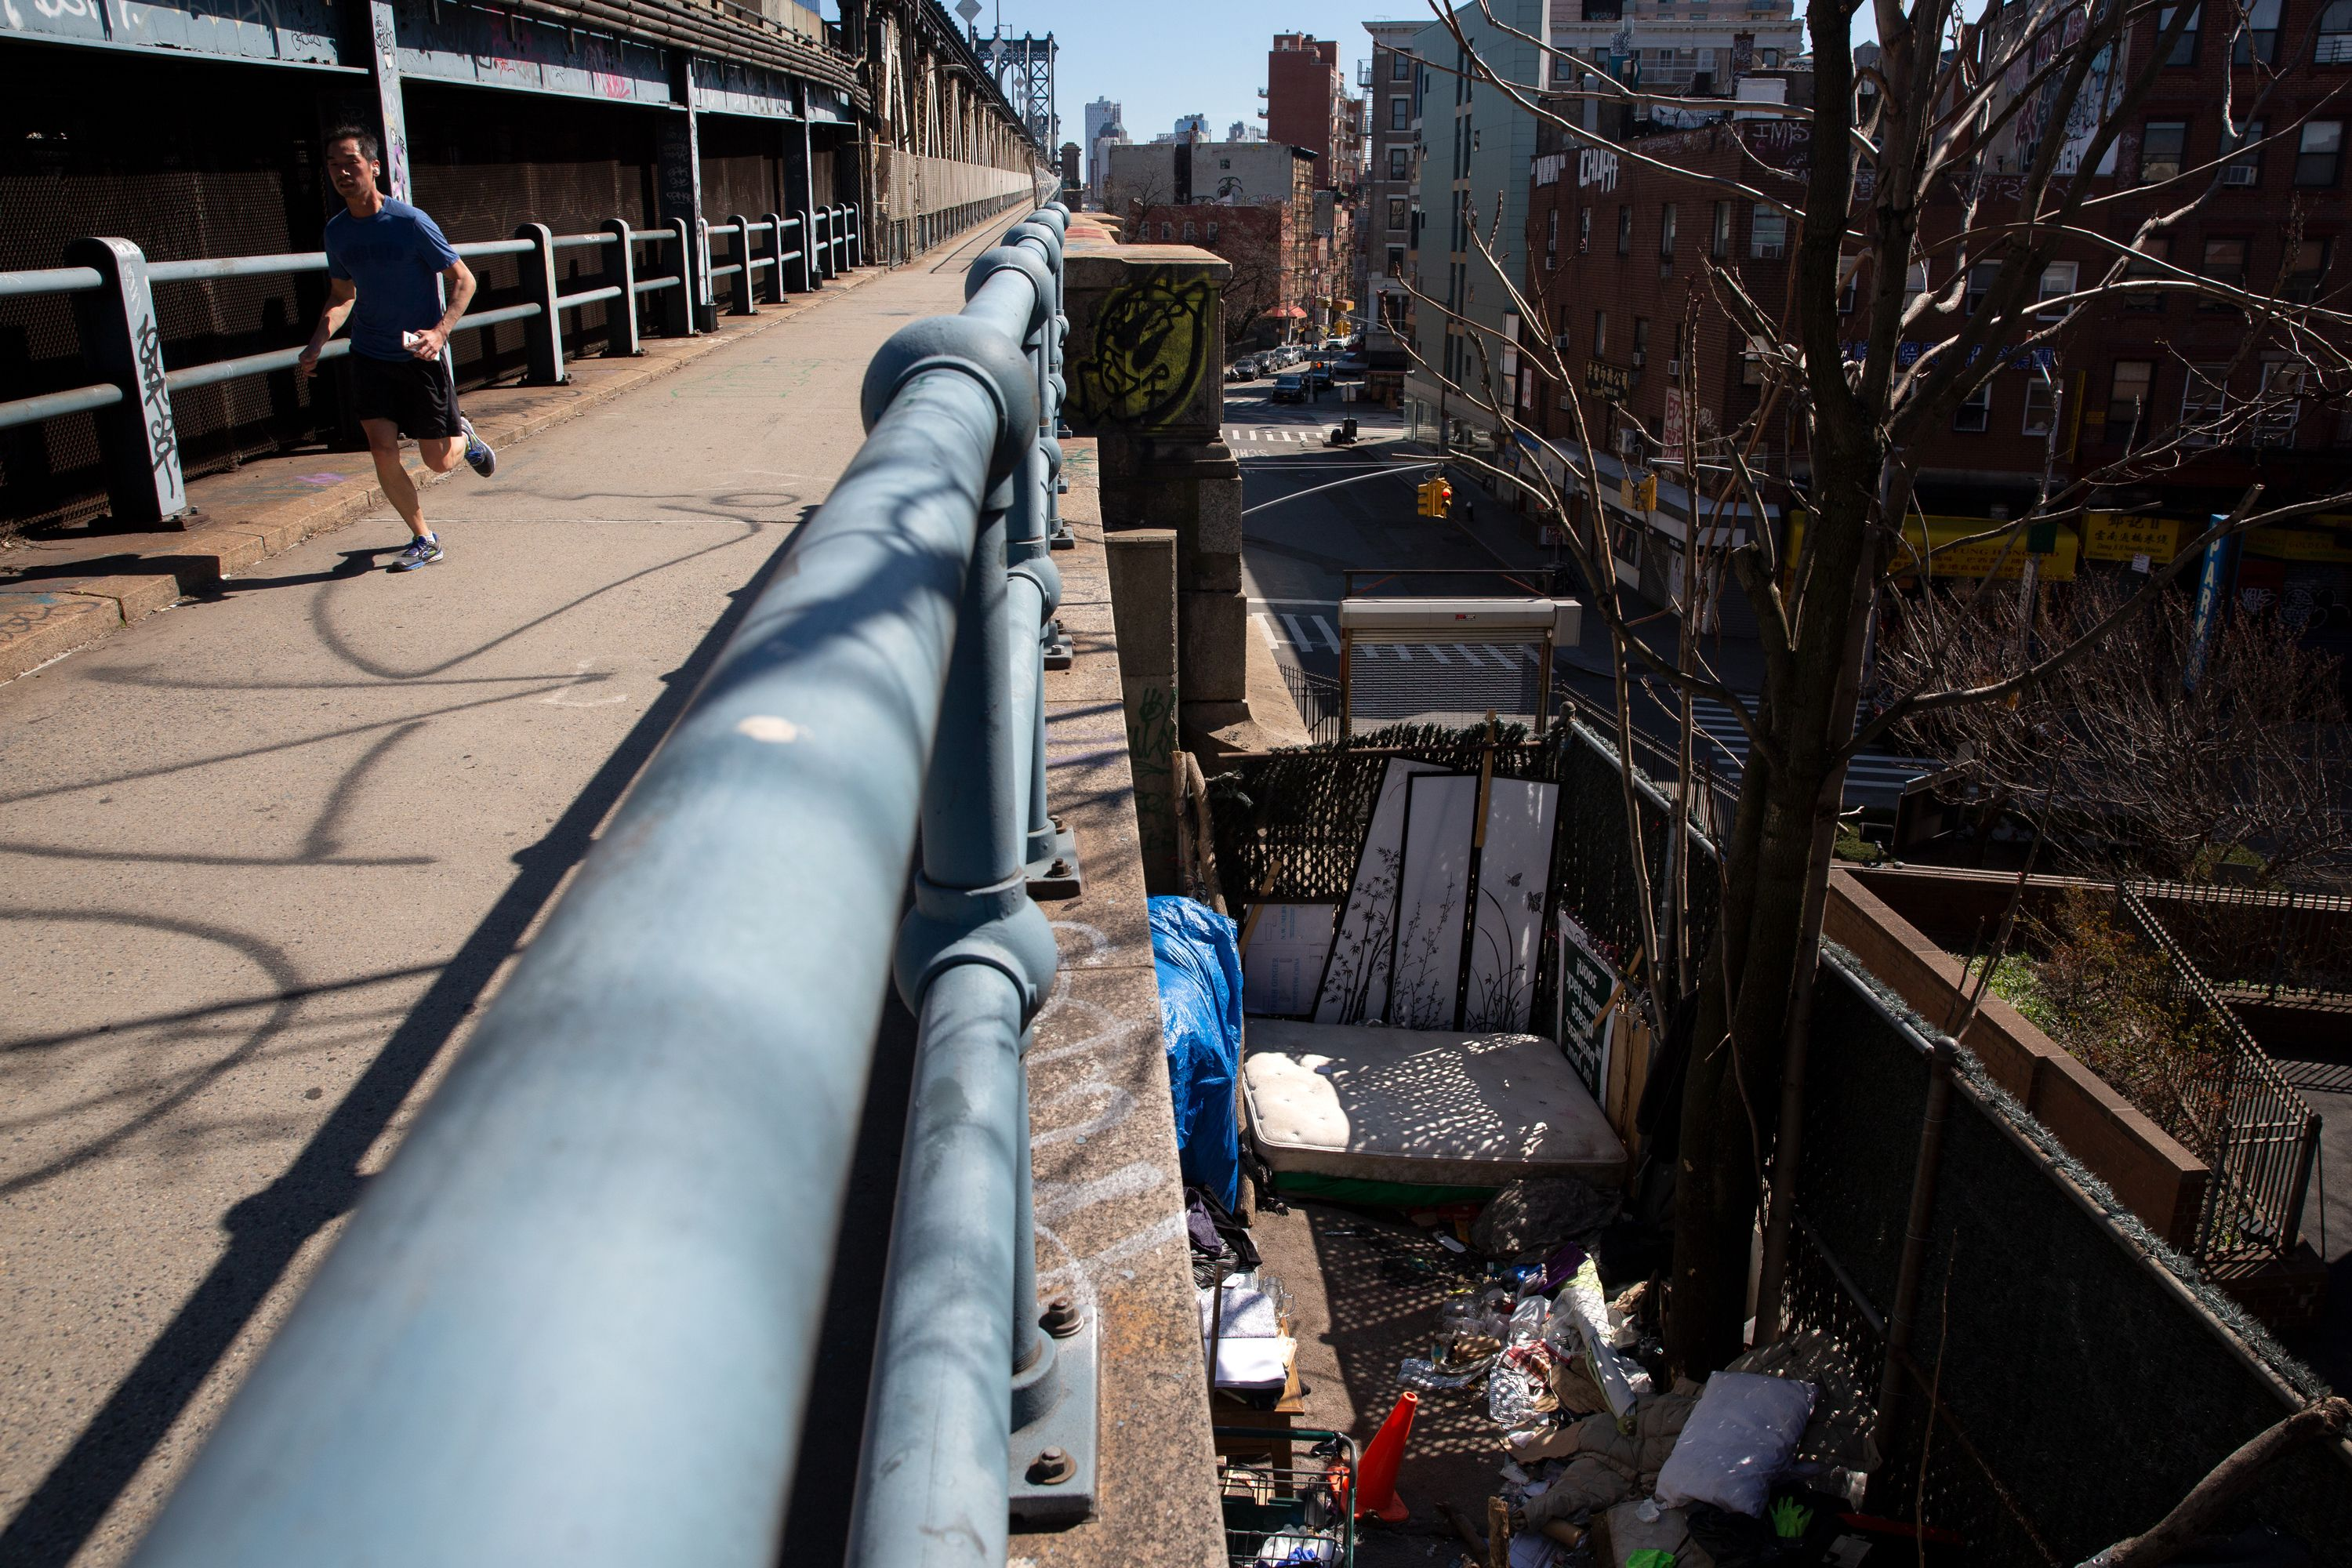 A homeless encampment on the side of the Manhattan Bridge in Chinatown.